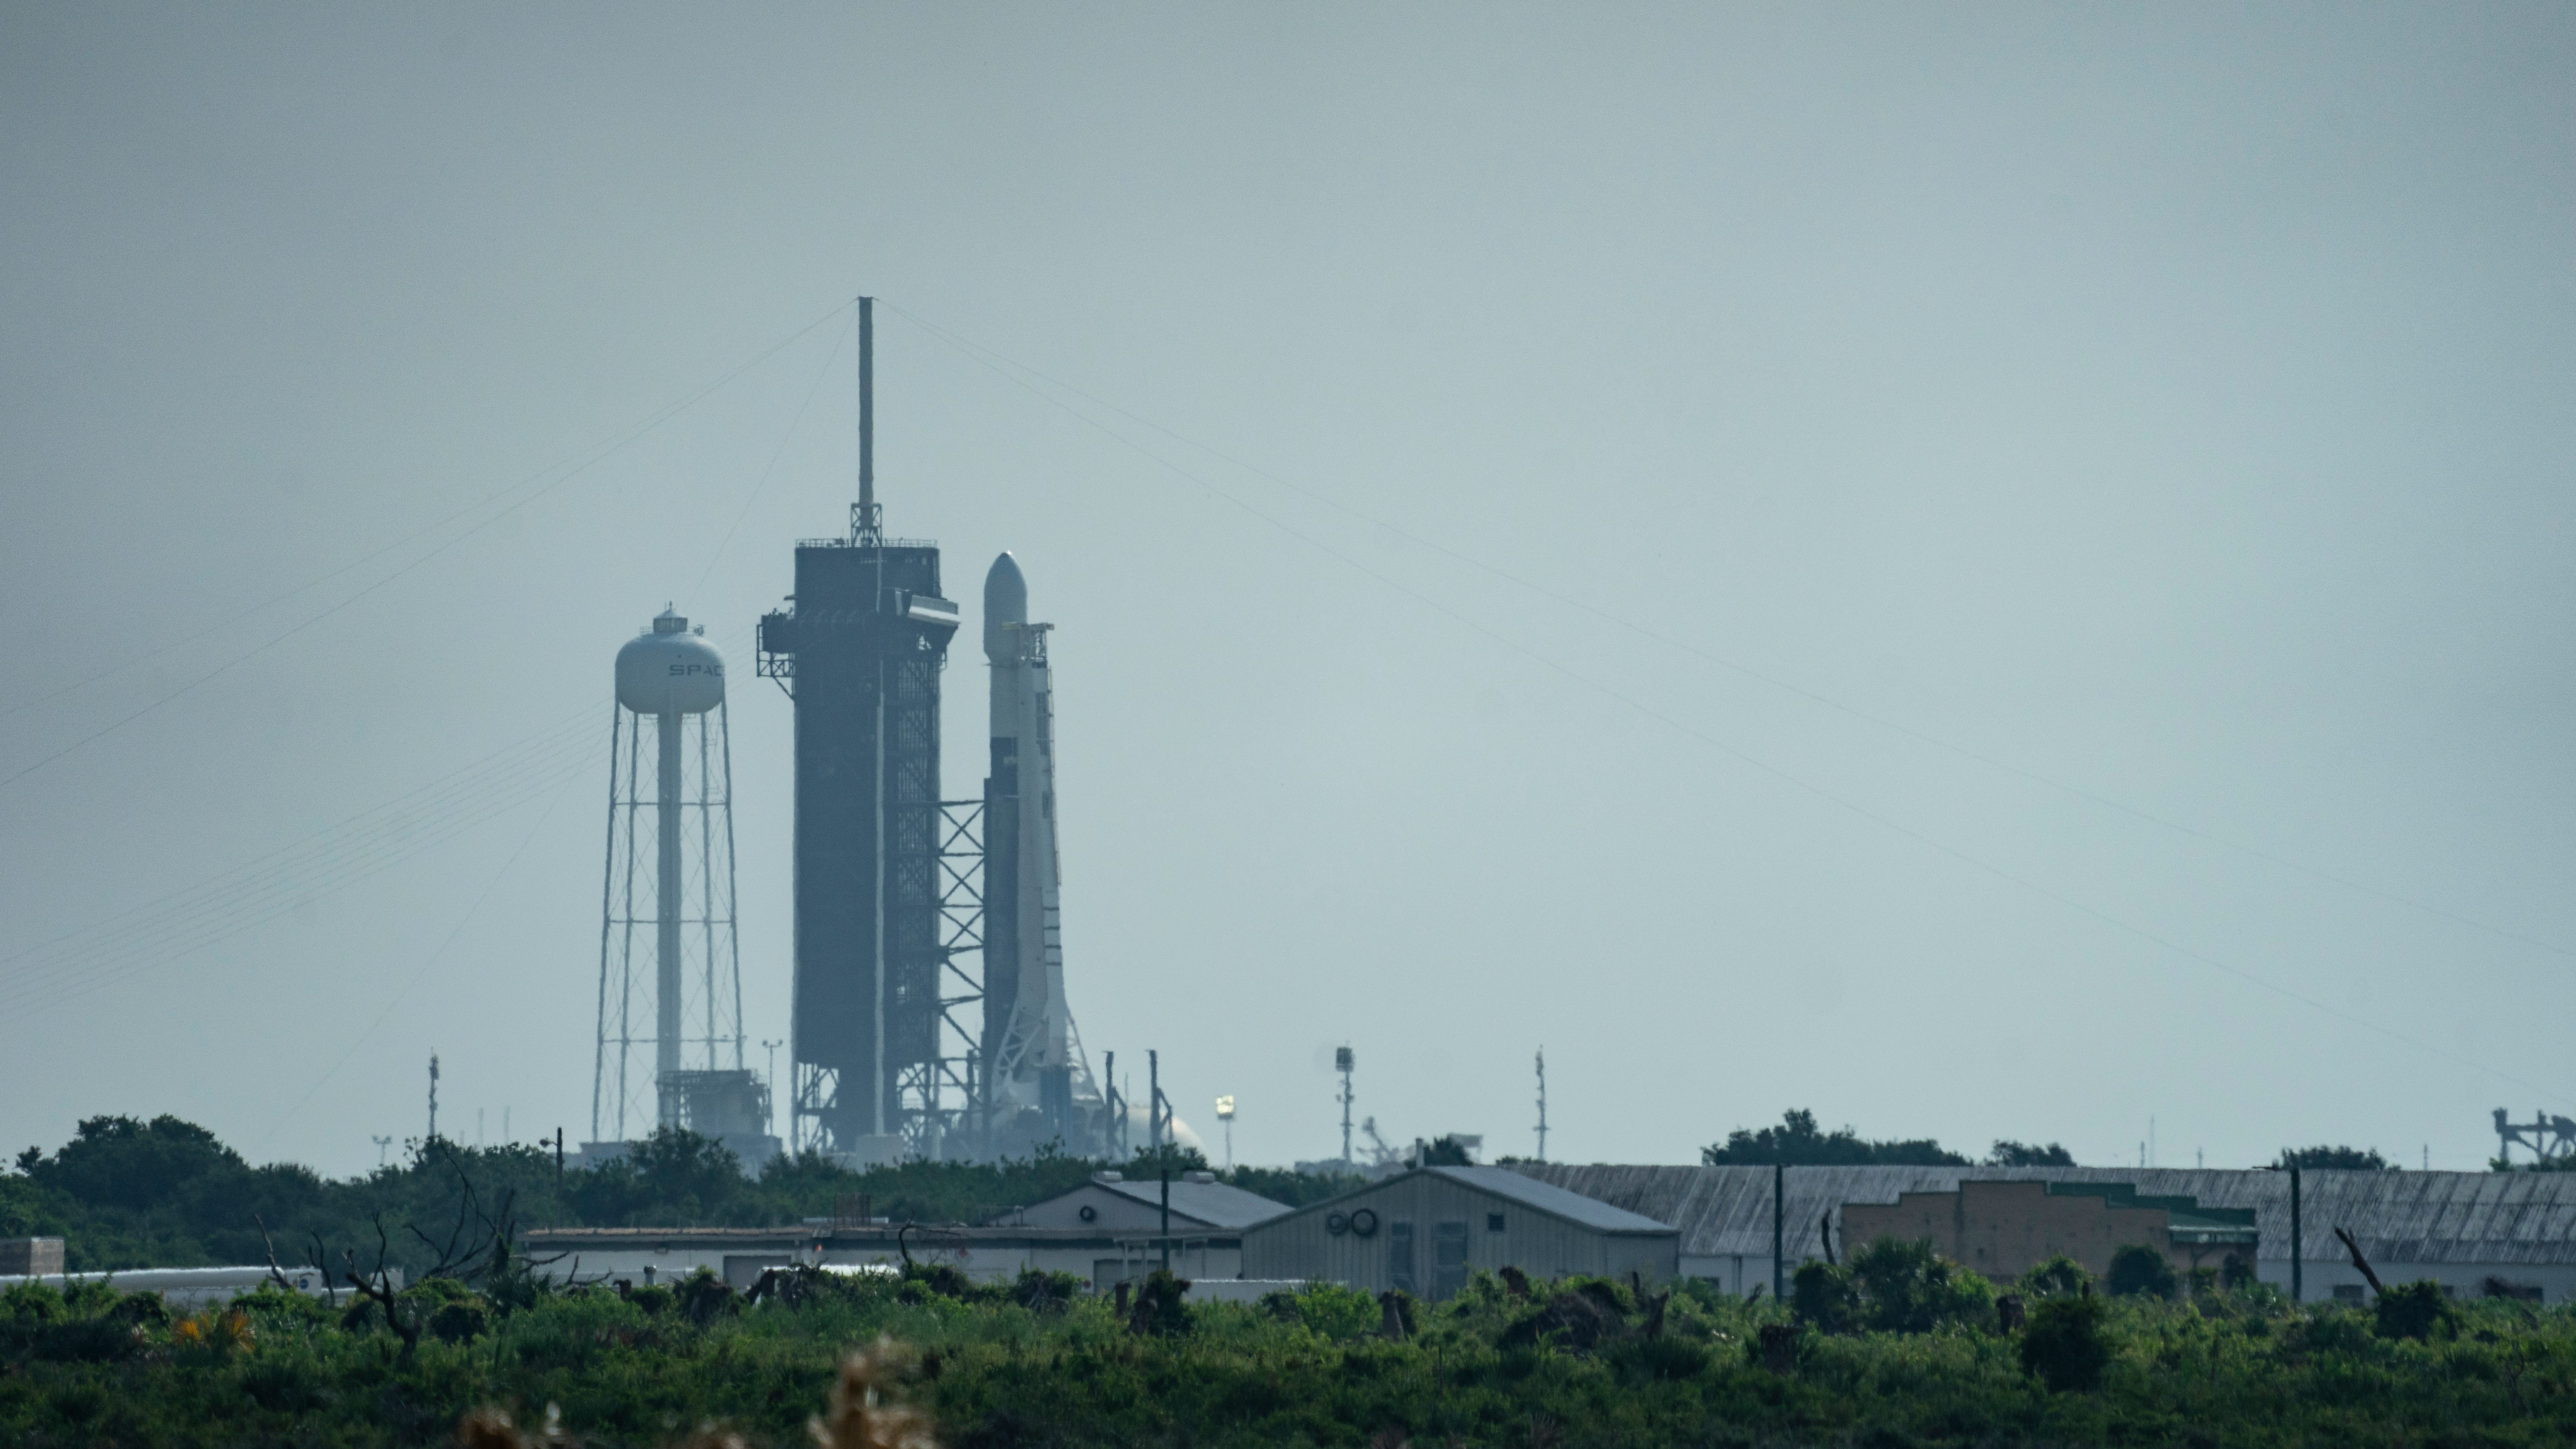 A SpaceX Falcon 9 rocket stands on pad 39A at Kenn